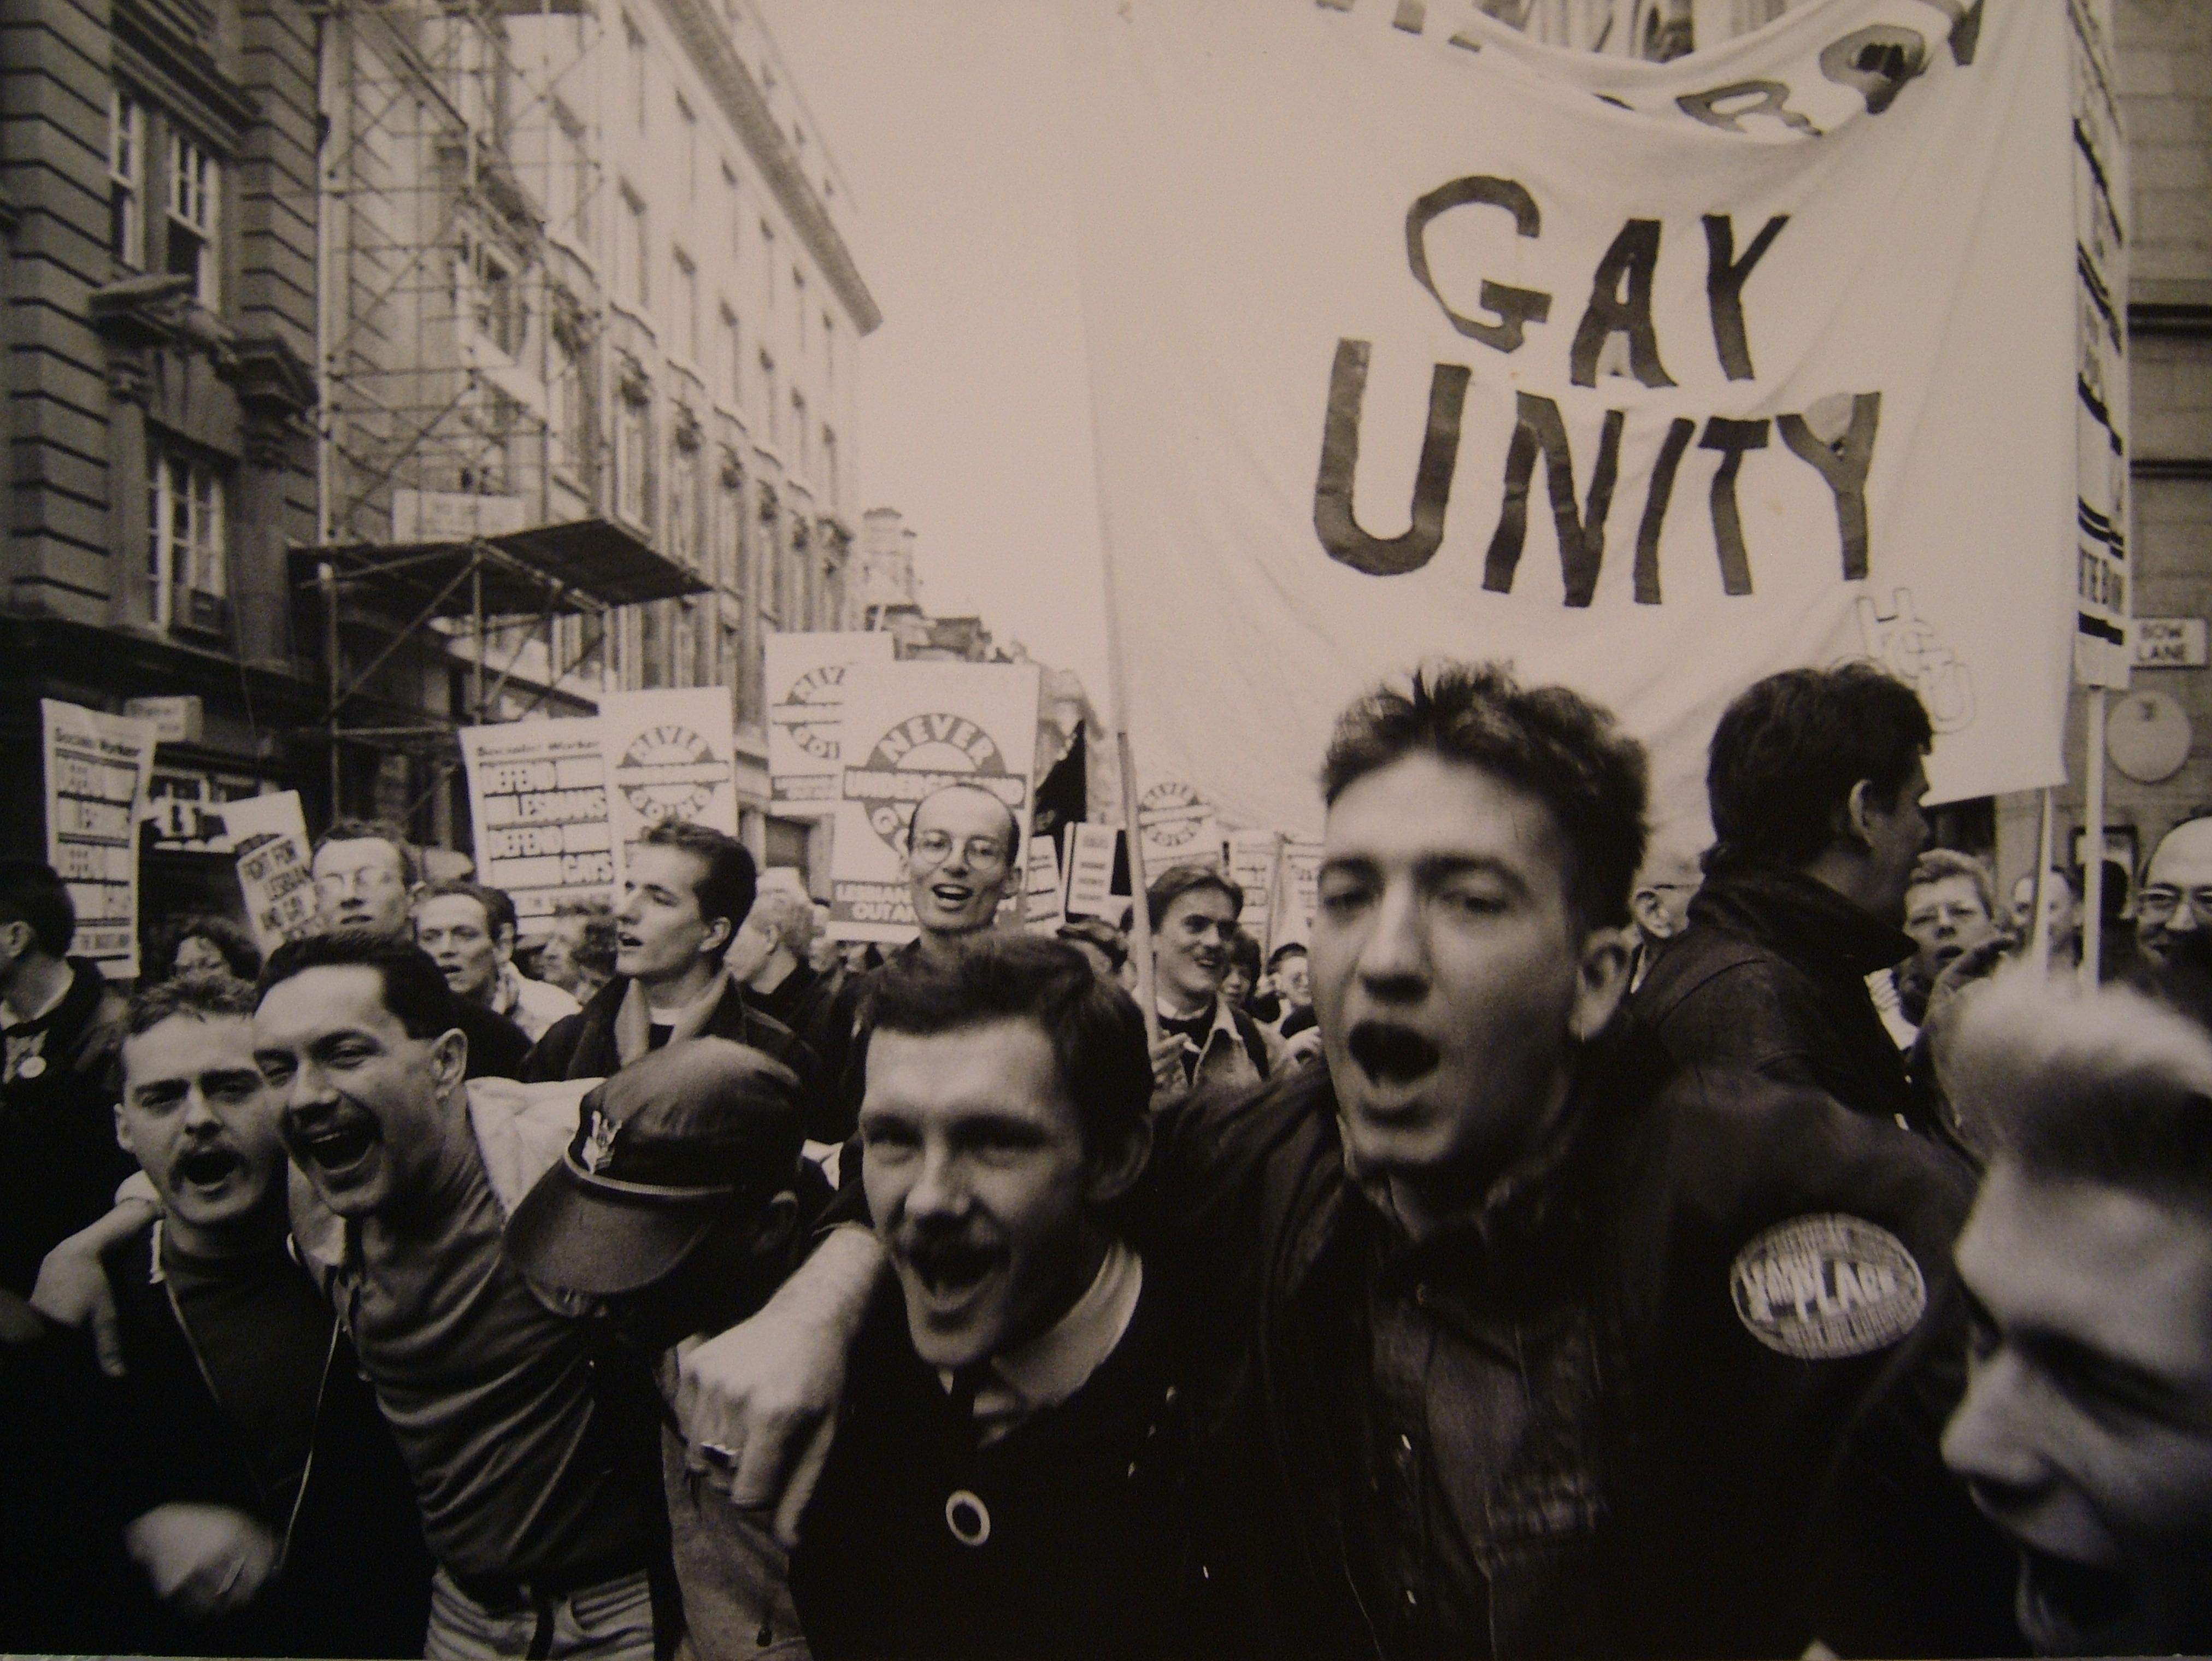 The Section 28 March - 30 Years On